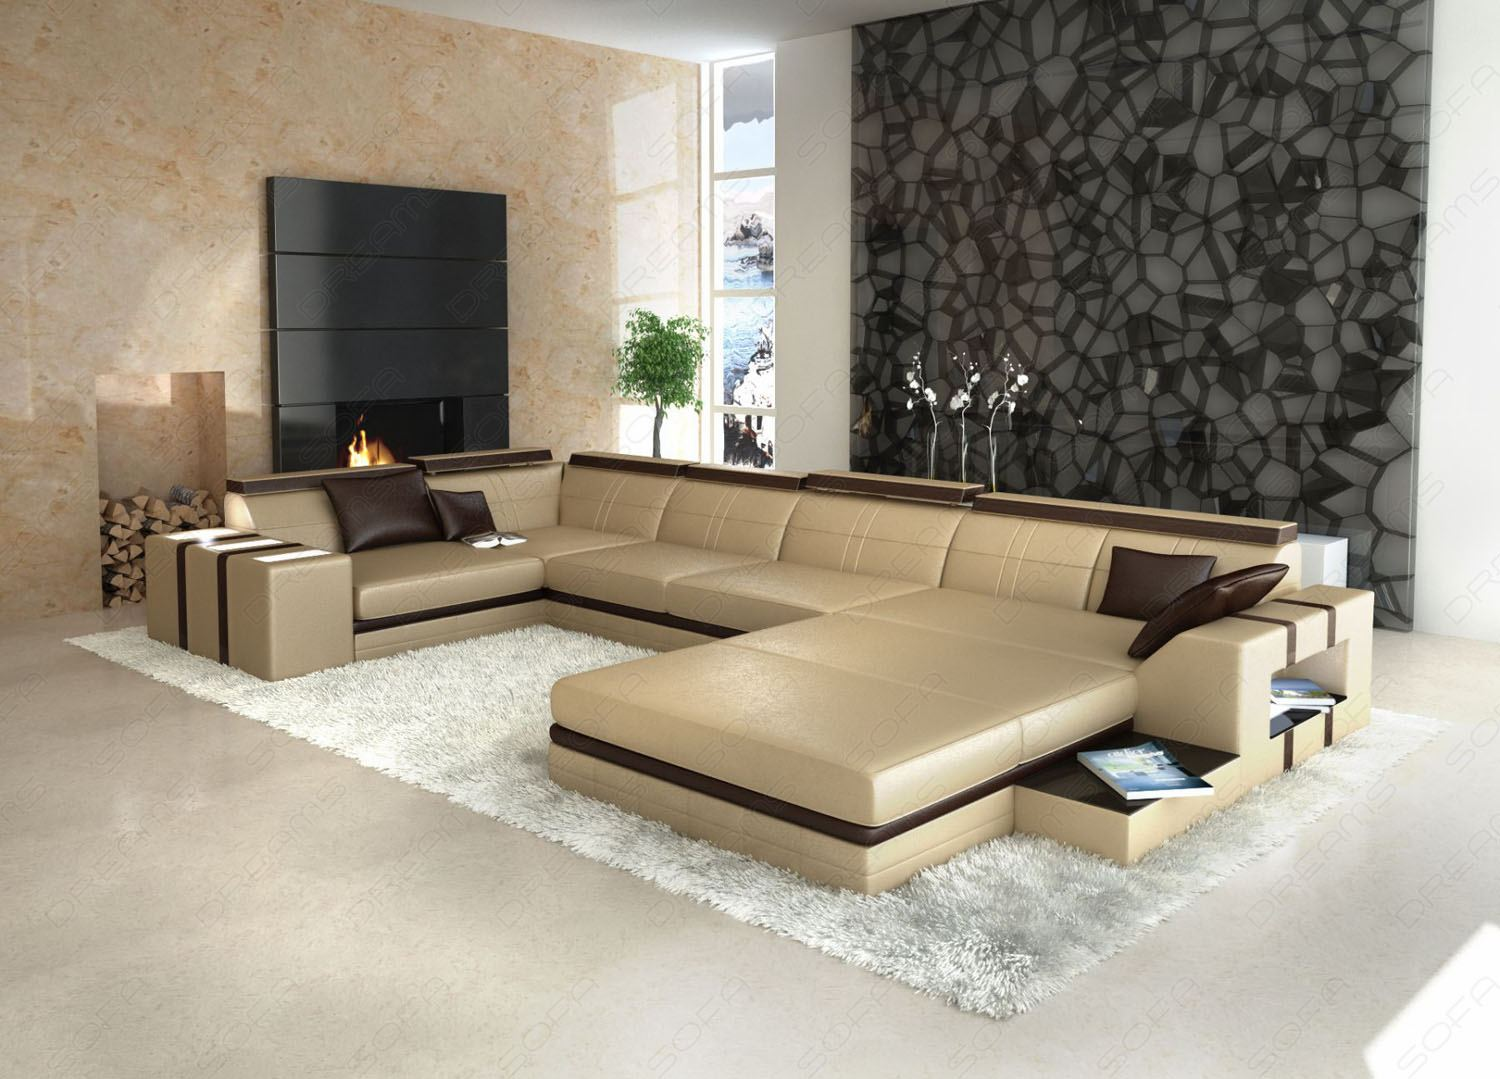 sofa u form das beste aus wohndesign und m bel inspiration. Black Bedroom Furniture Sets. Home Design Ideas